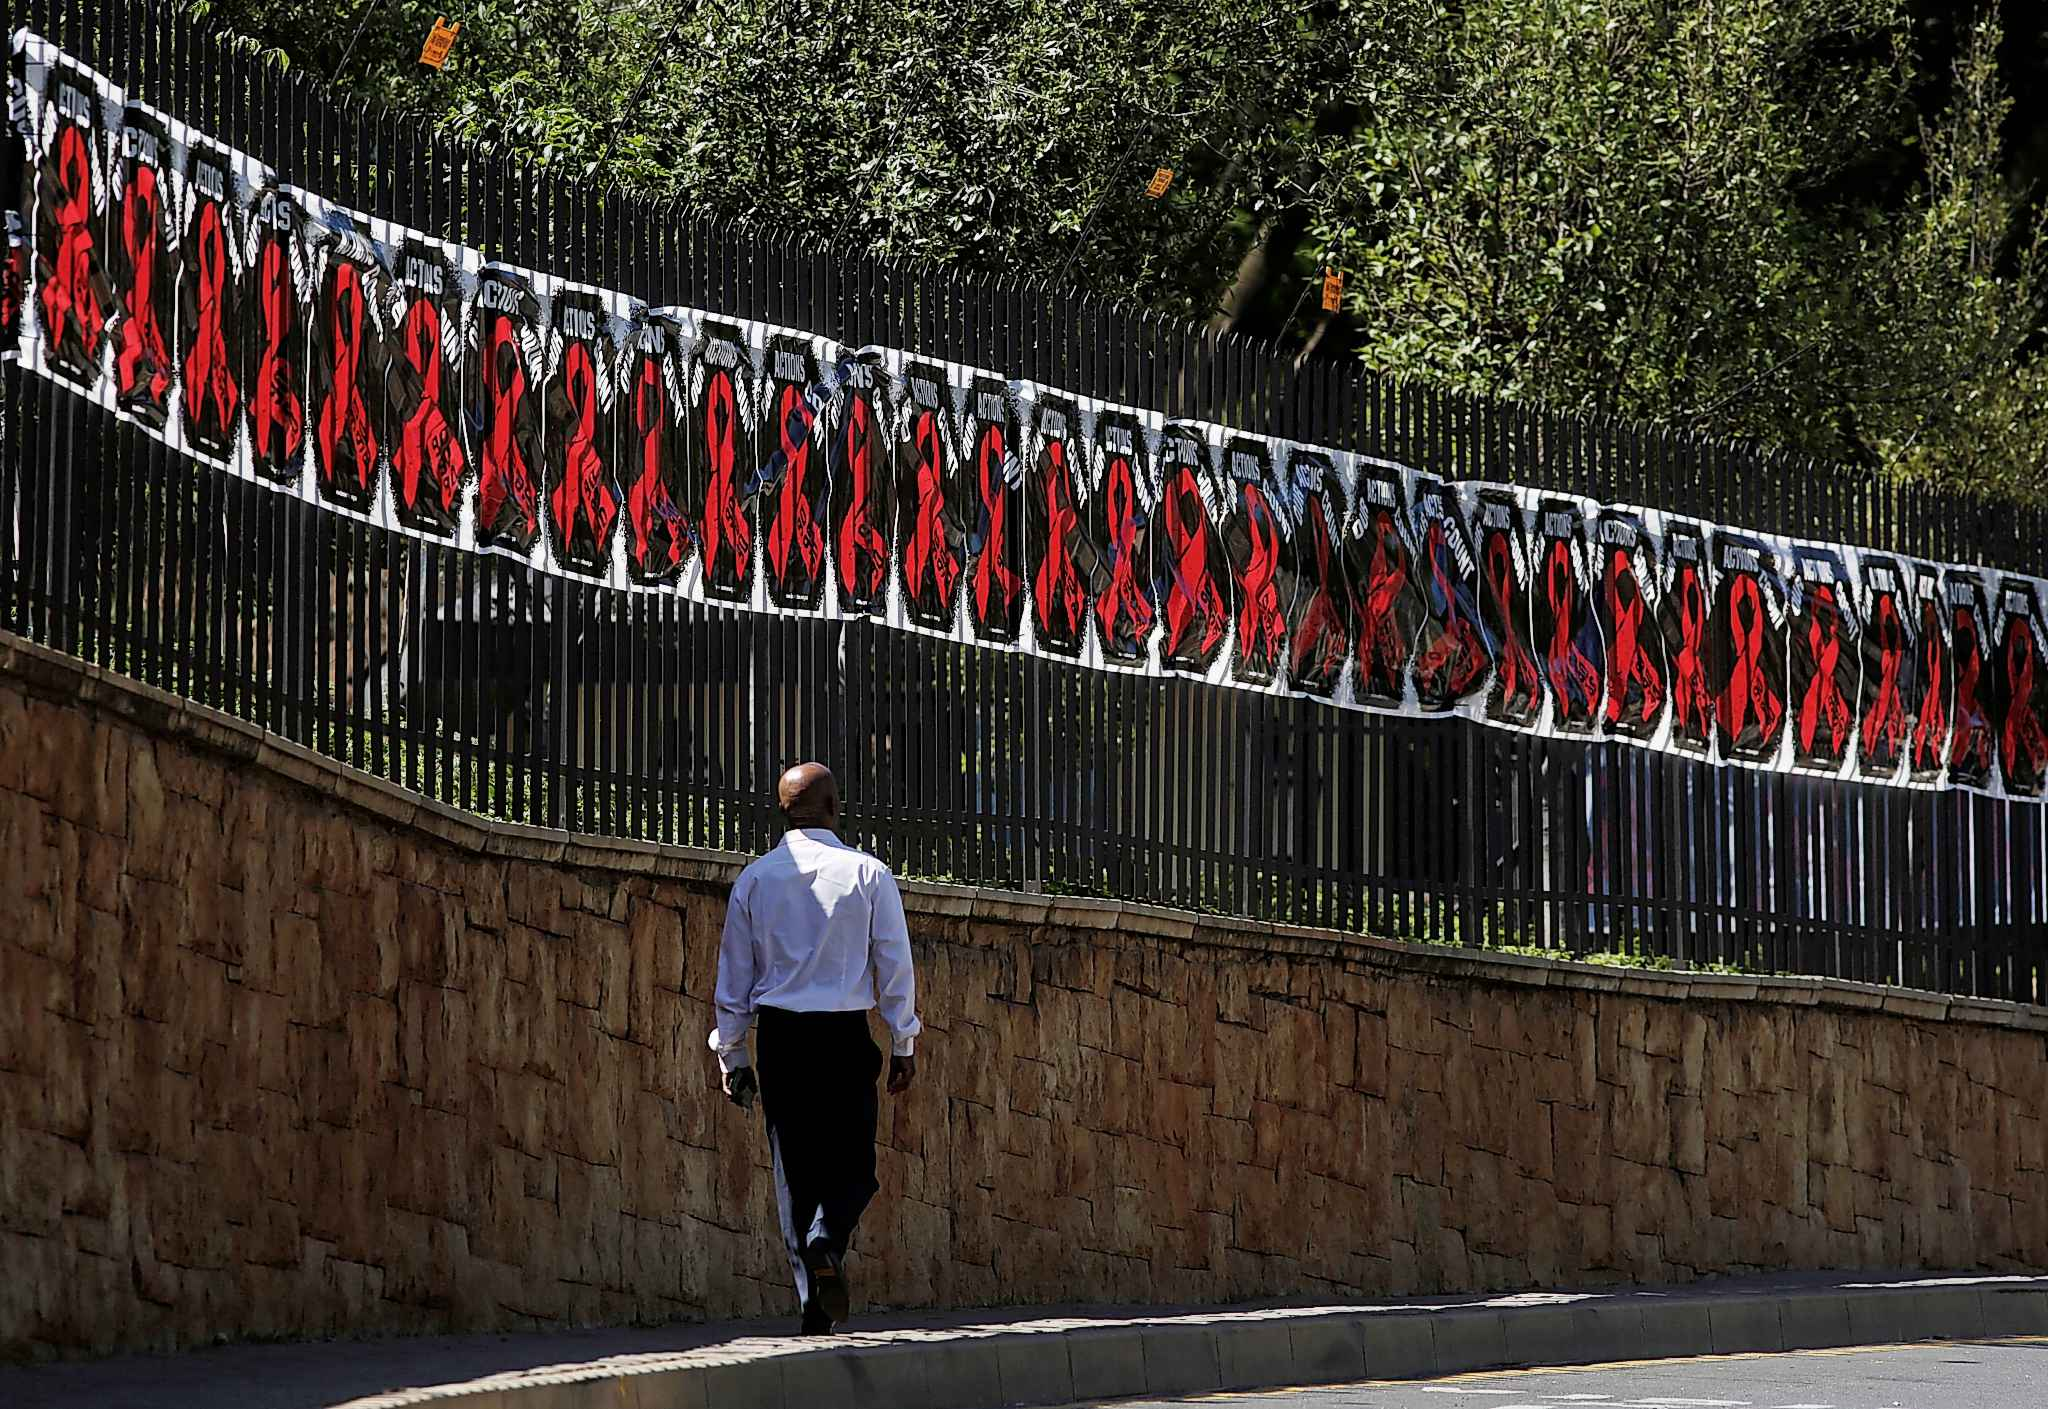 A man on Friday in Johannesburg, South Africa, celebrated the World Aids Day. (Denny Farrell / Associated Press)